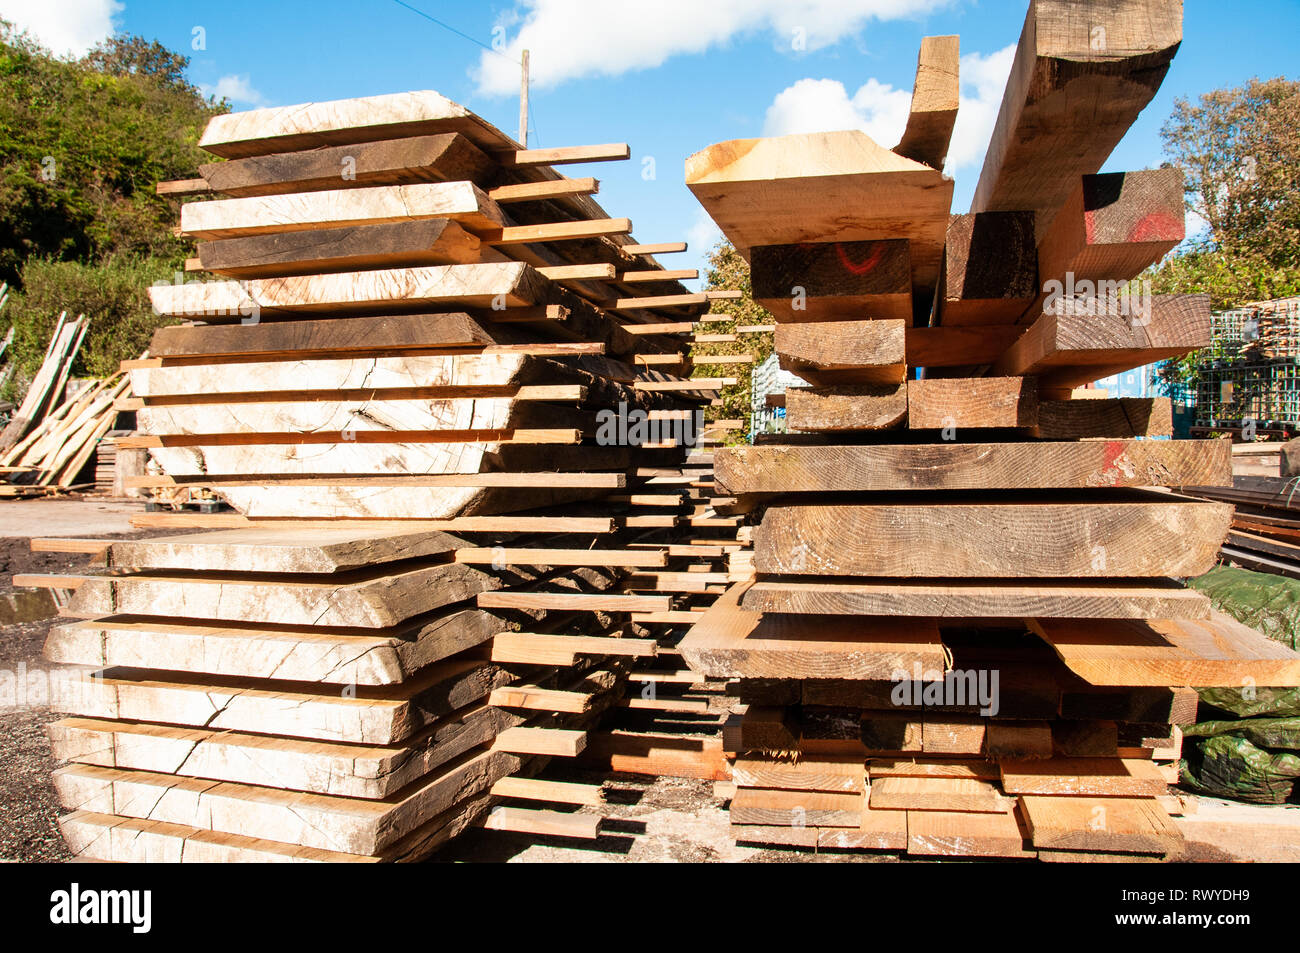 Lengths of timber stacked in yard - Stock Image